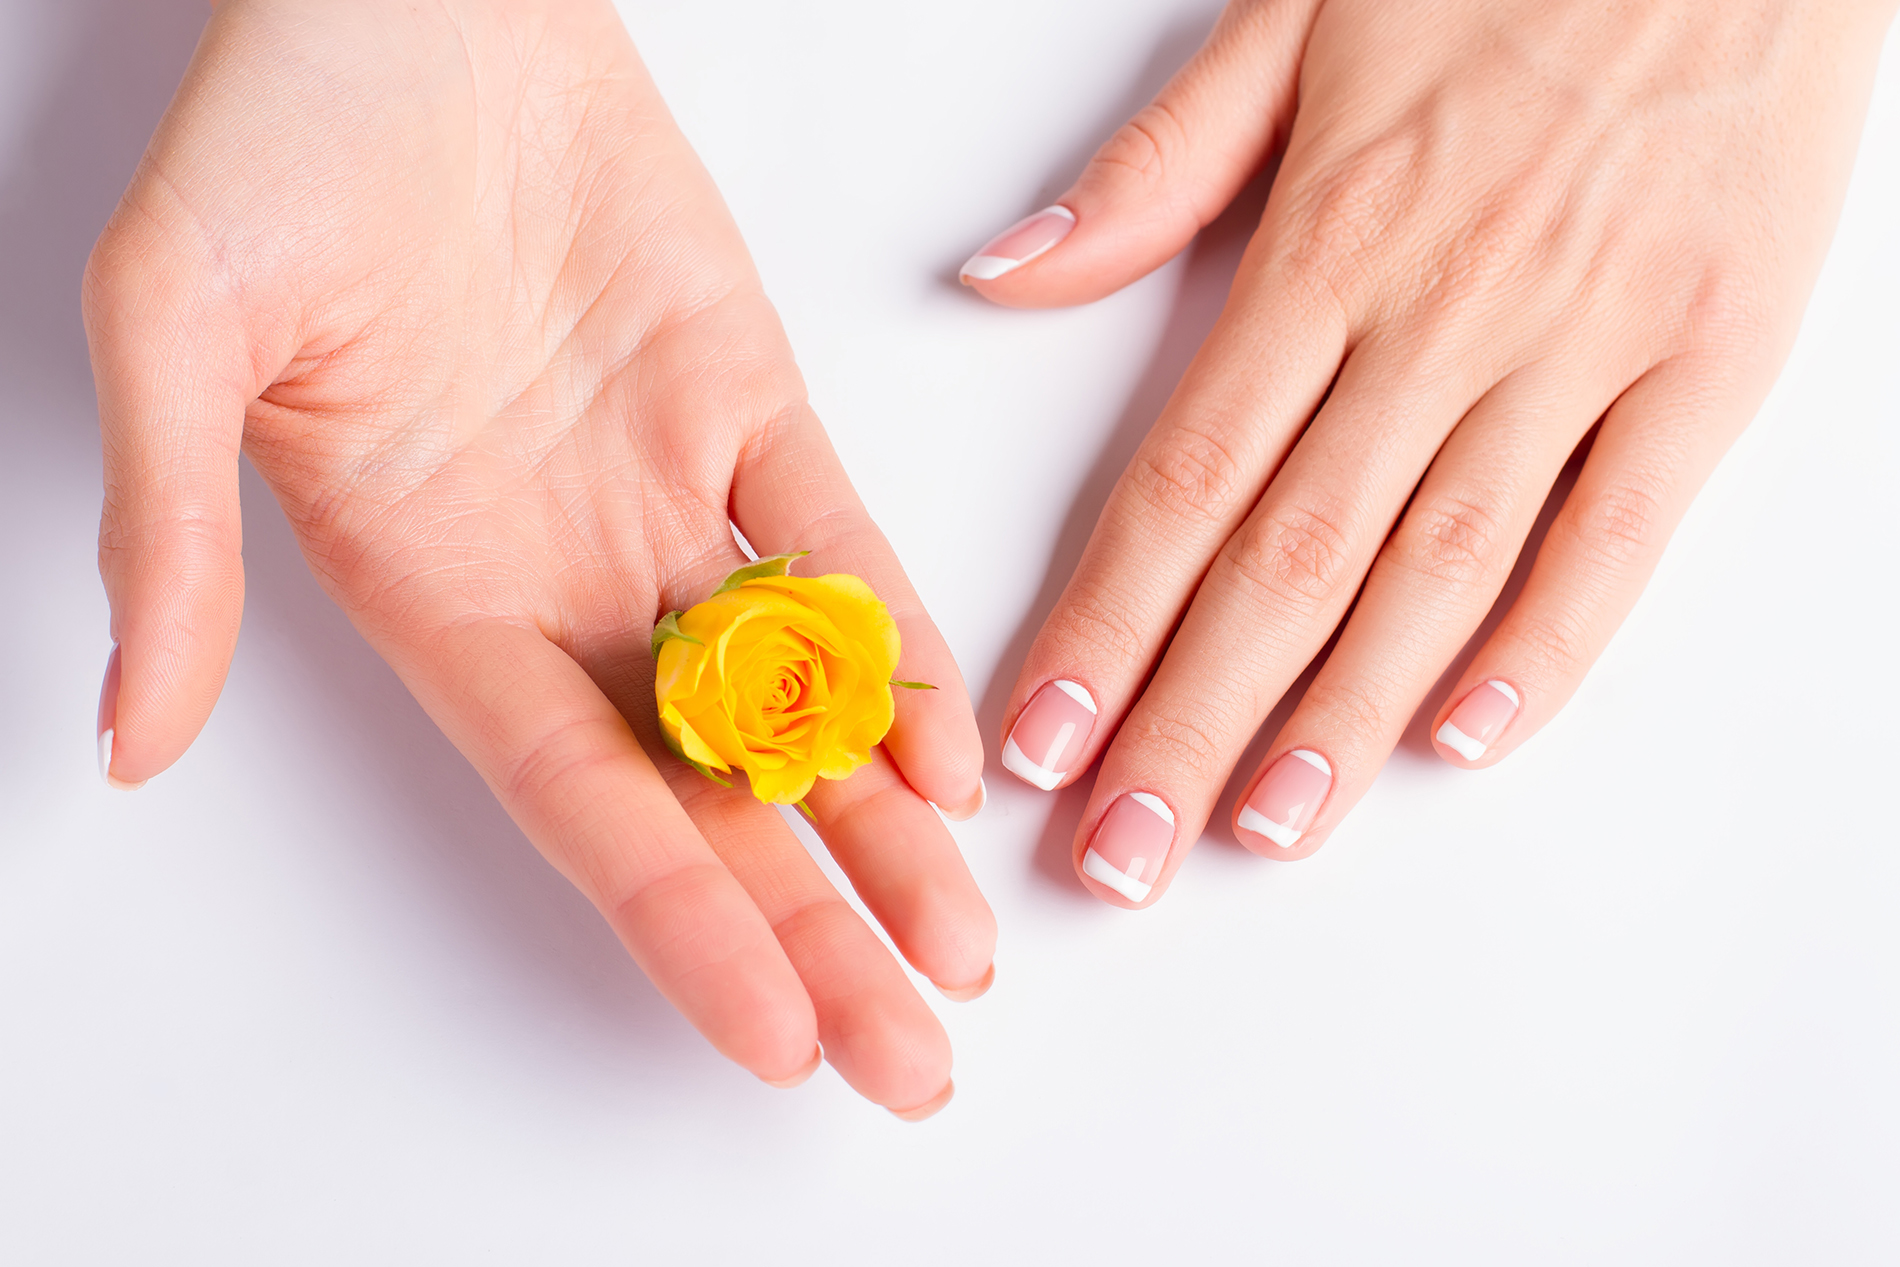 On the Palm of the yellow rose flower 52974